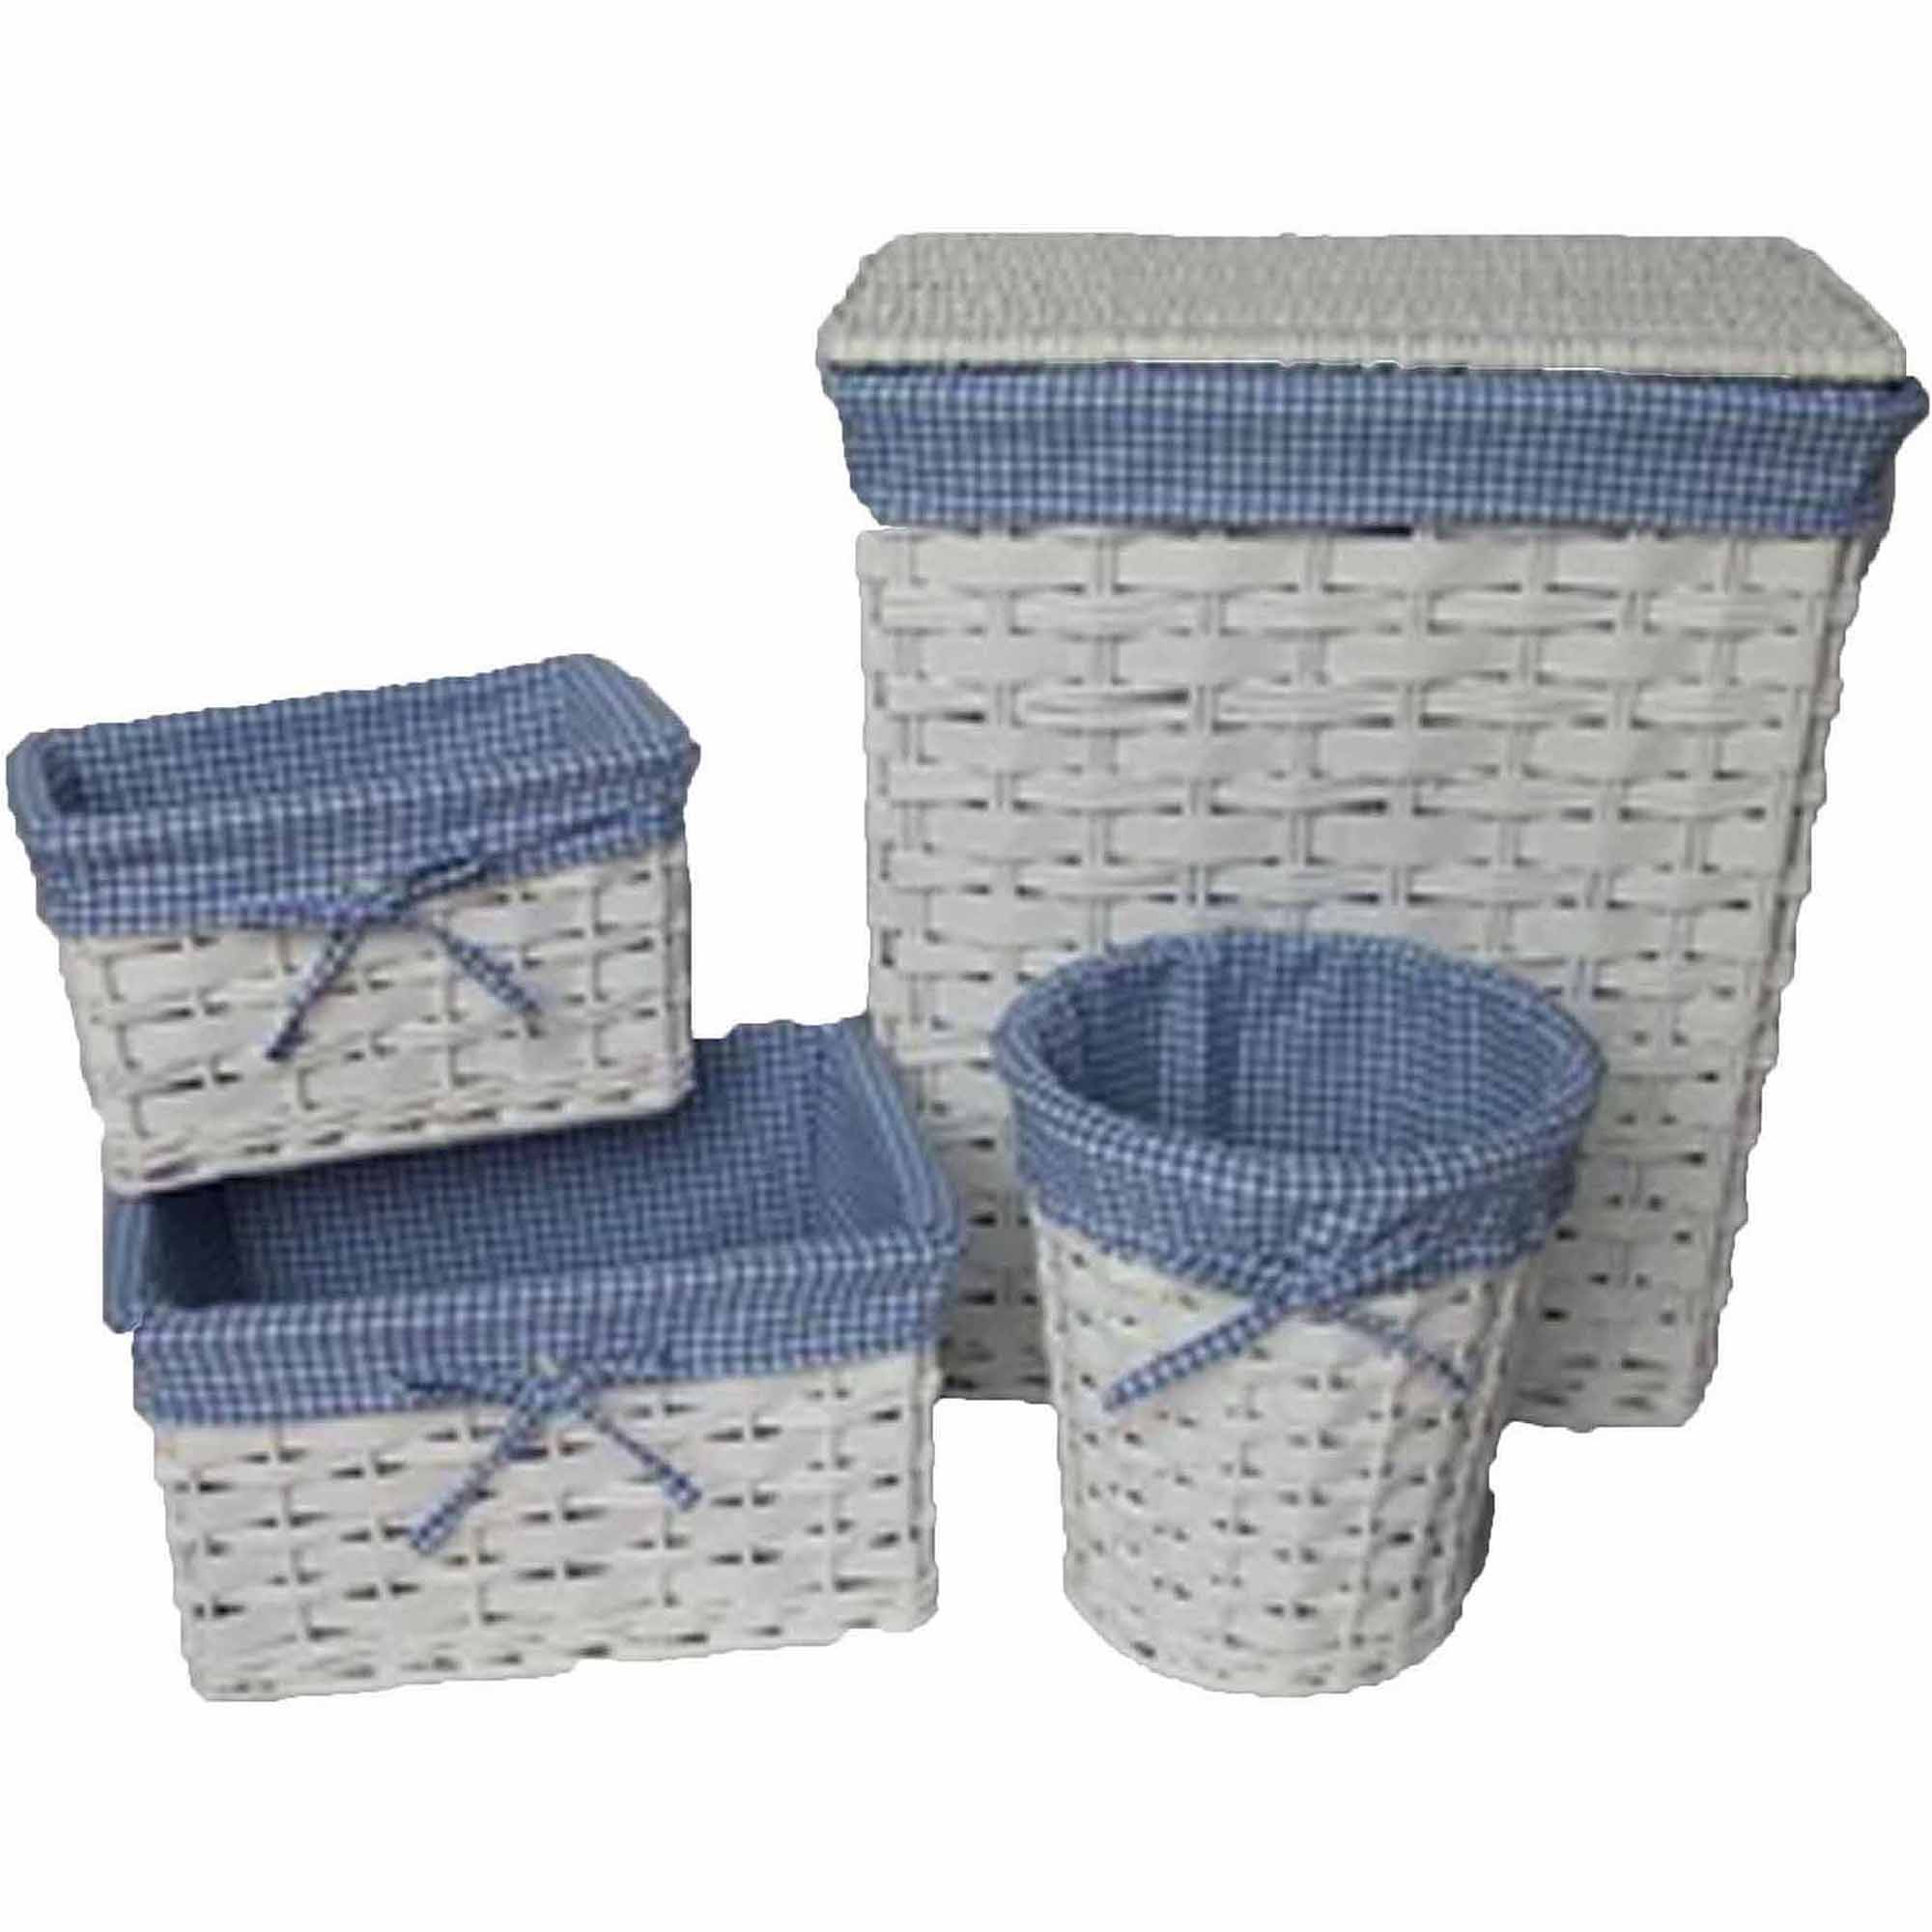 Baum 4-Piece Hamper Set with Blue Gingham Liners, White